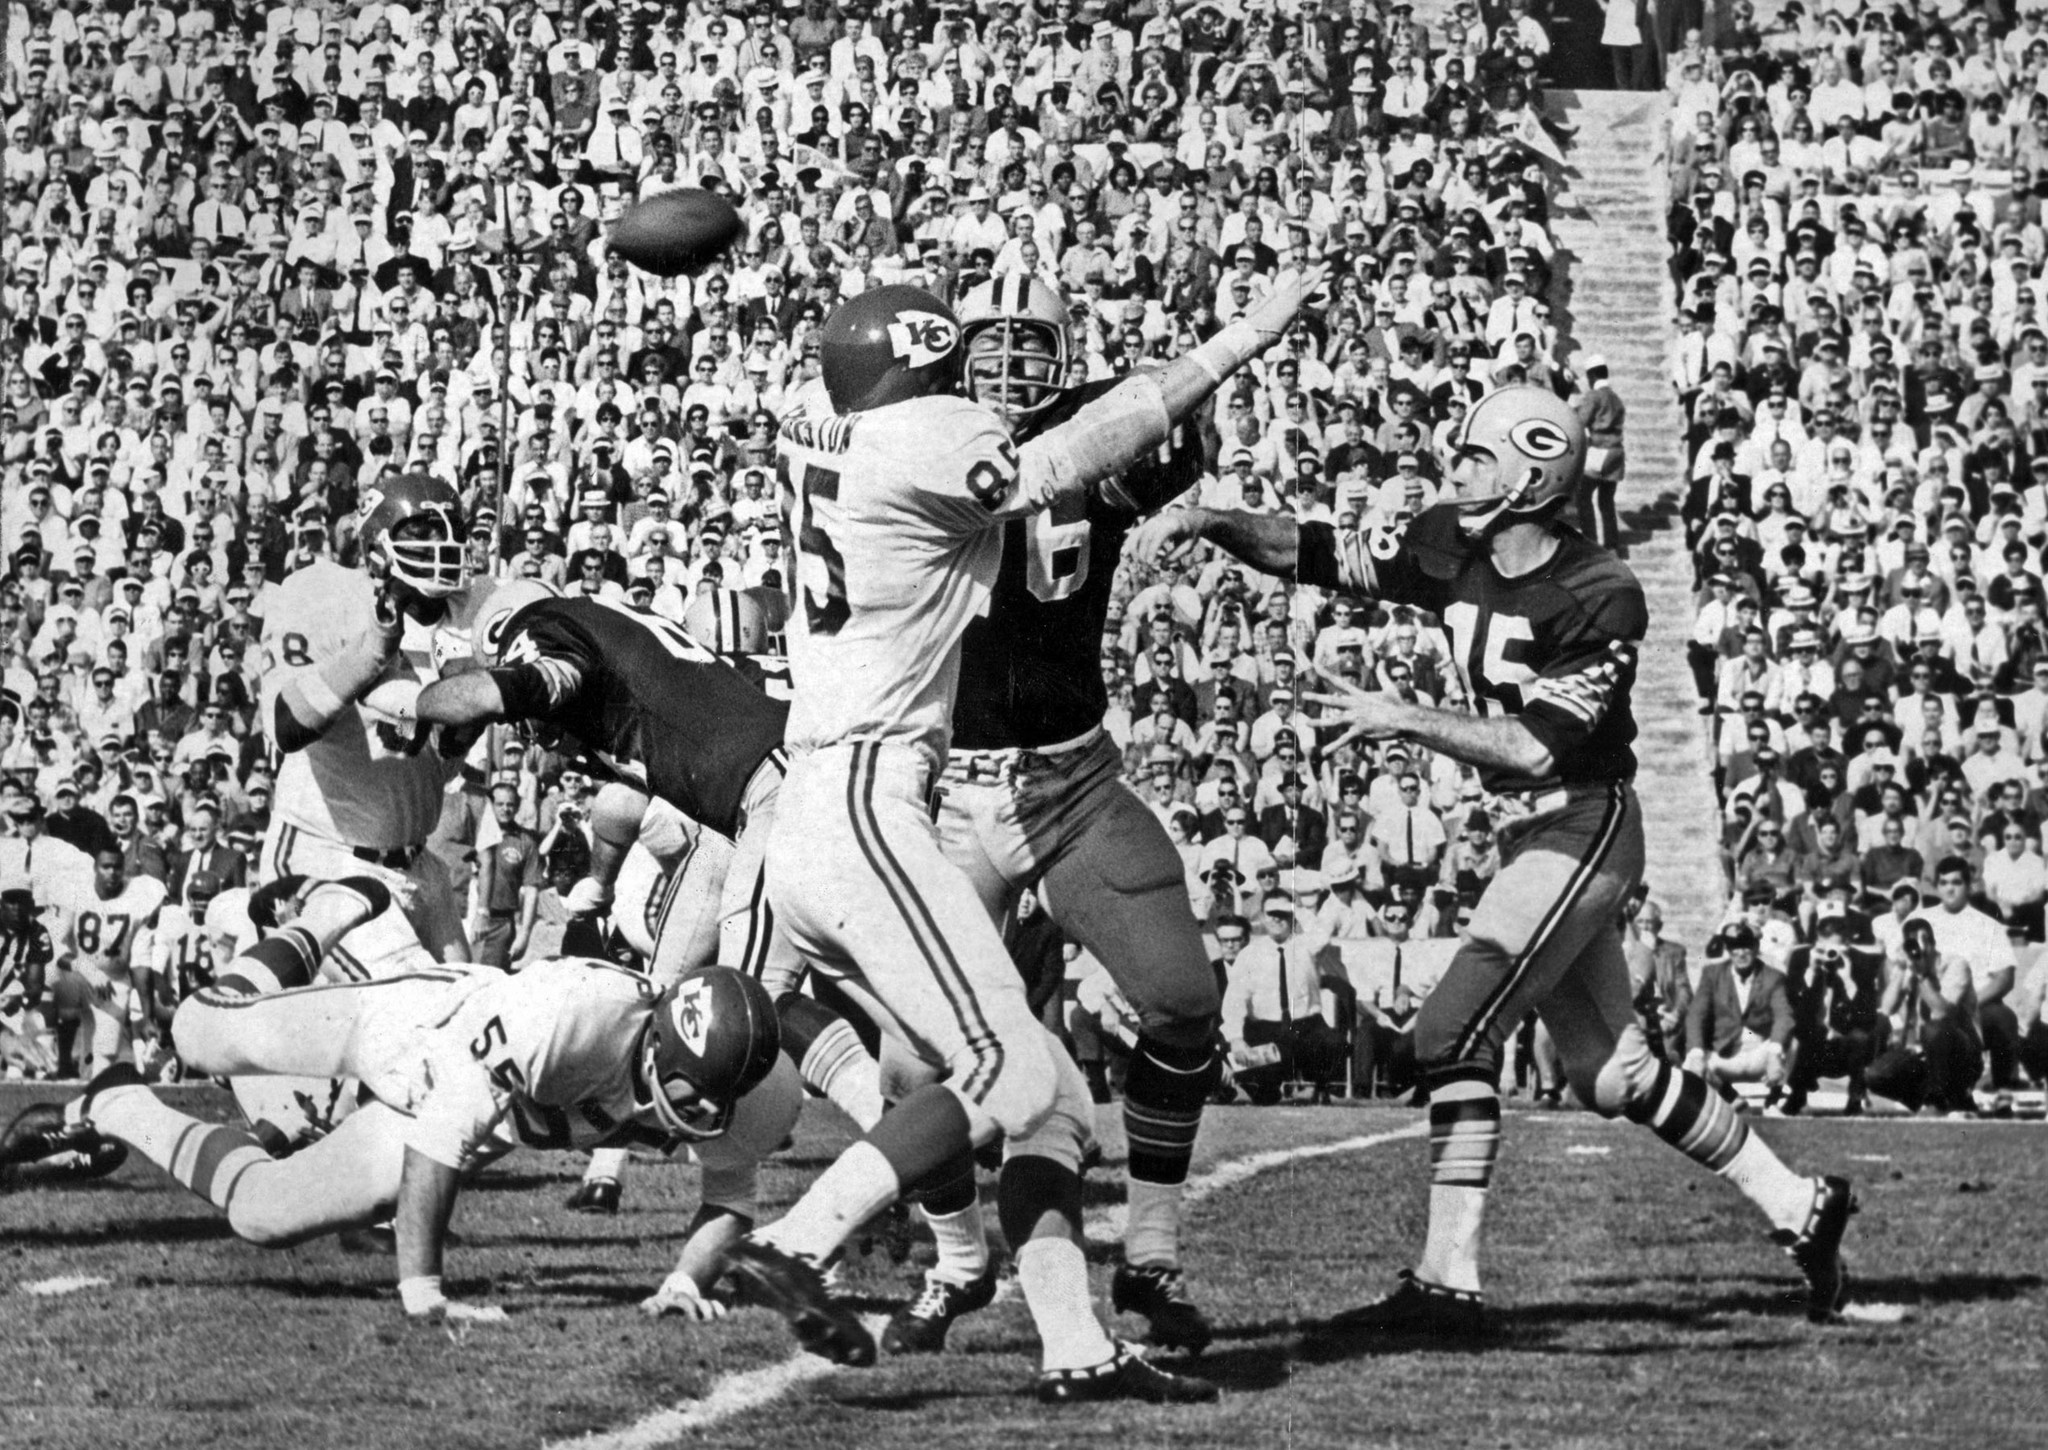 Jan. 15, 1967: Packers' Bart Starr throws a first quater pass complete to Elijah Pitts during Super